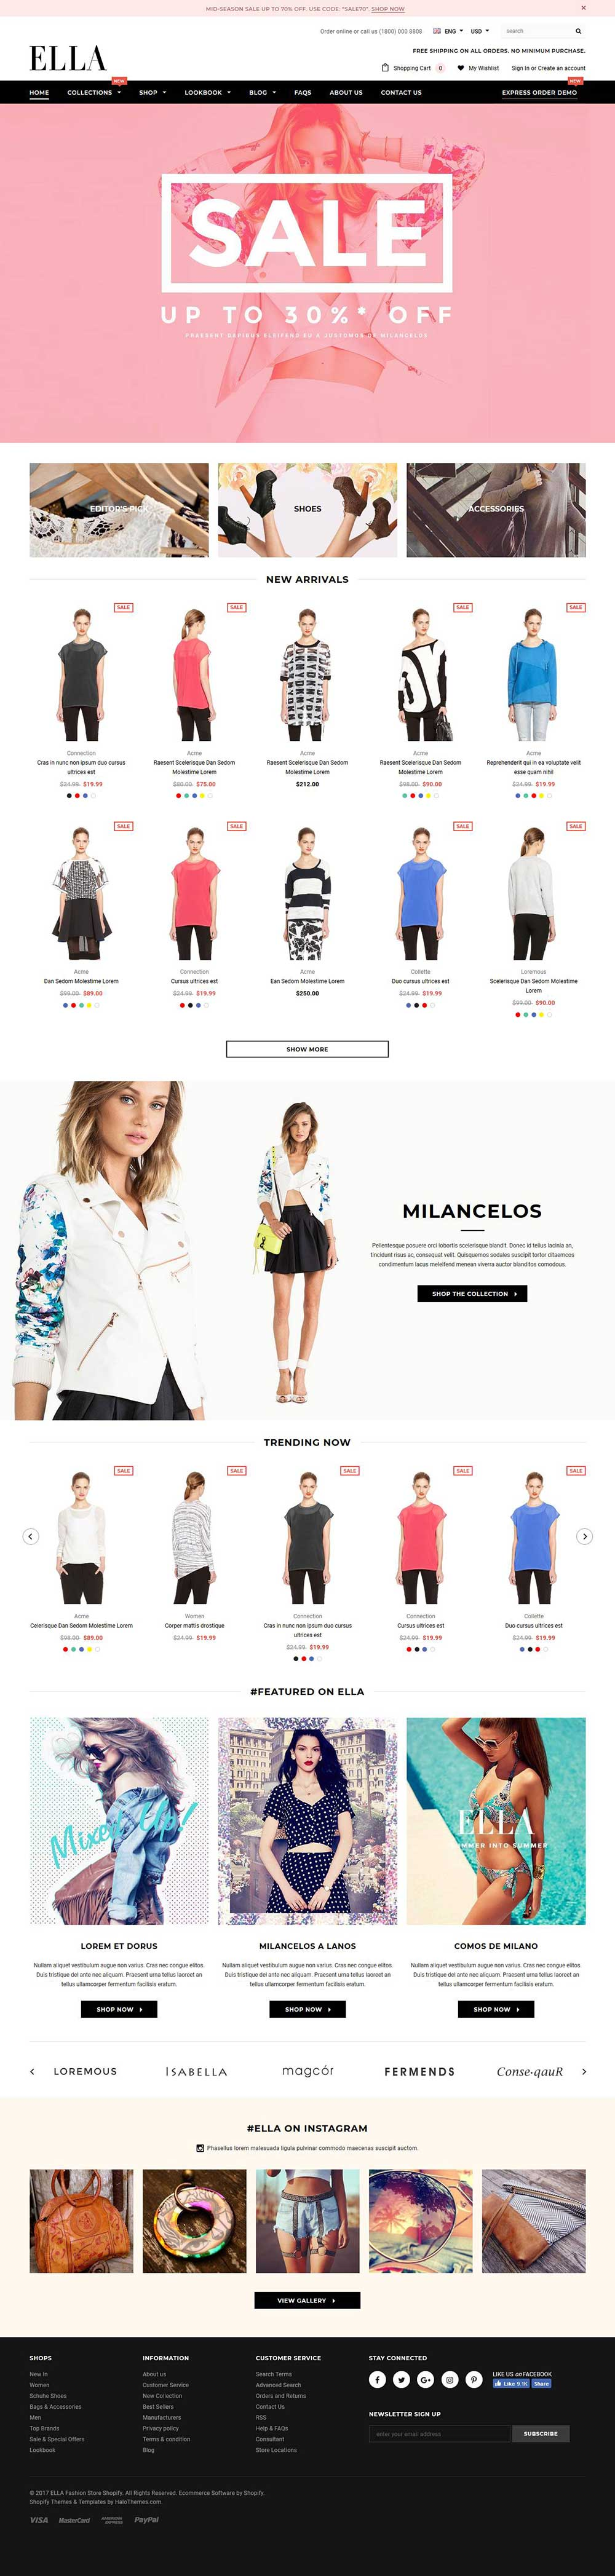 30+ Best Shopify themes 2018 with beautiful design for eCommerce ...